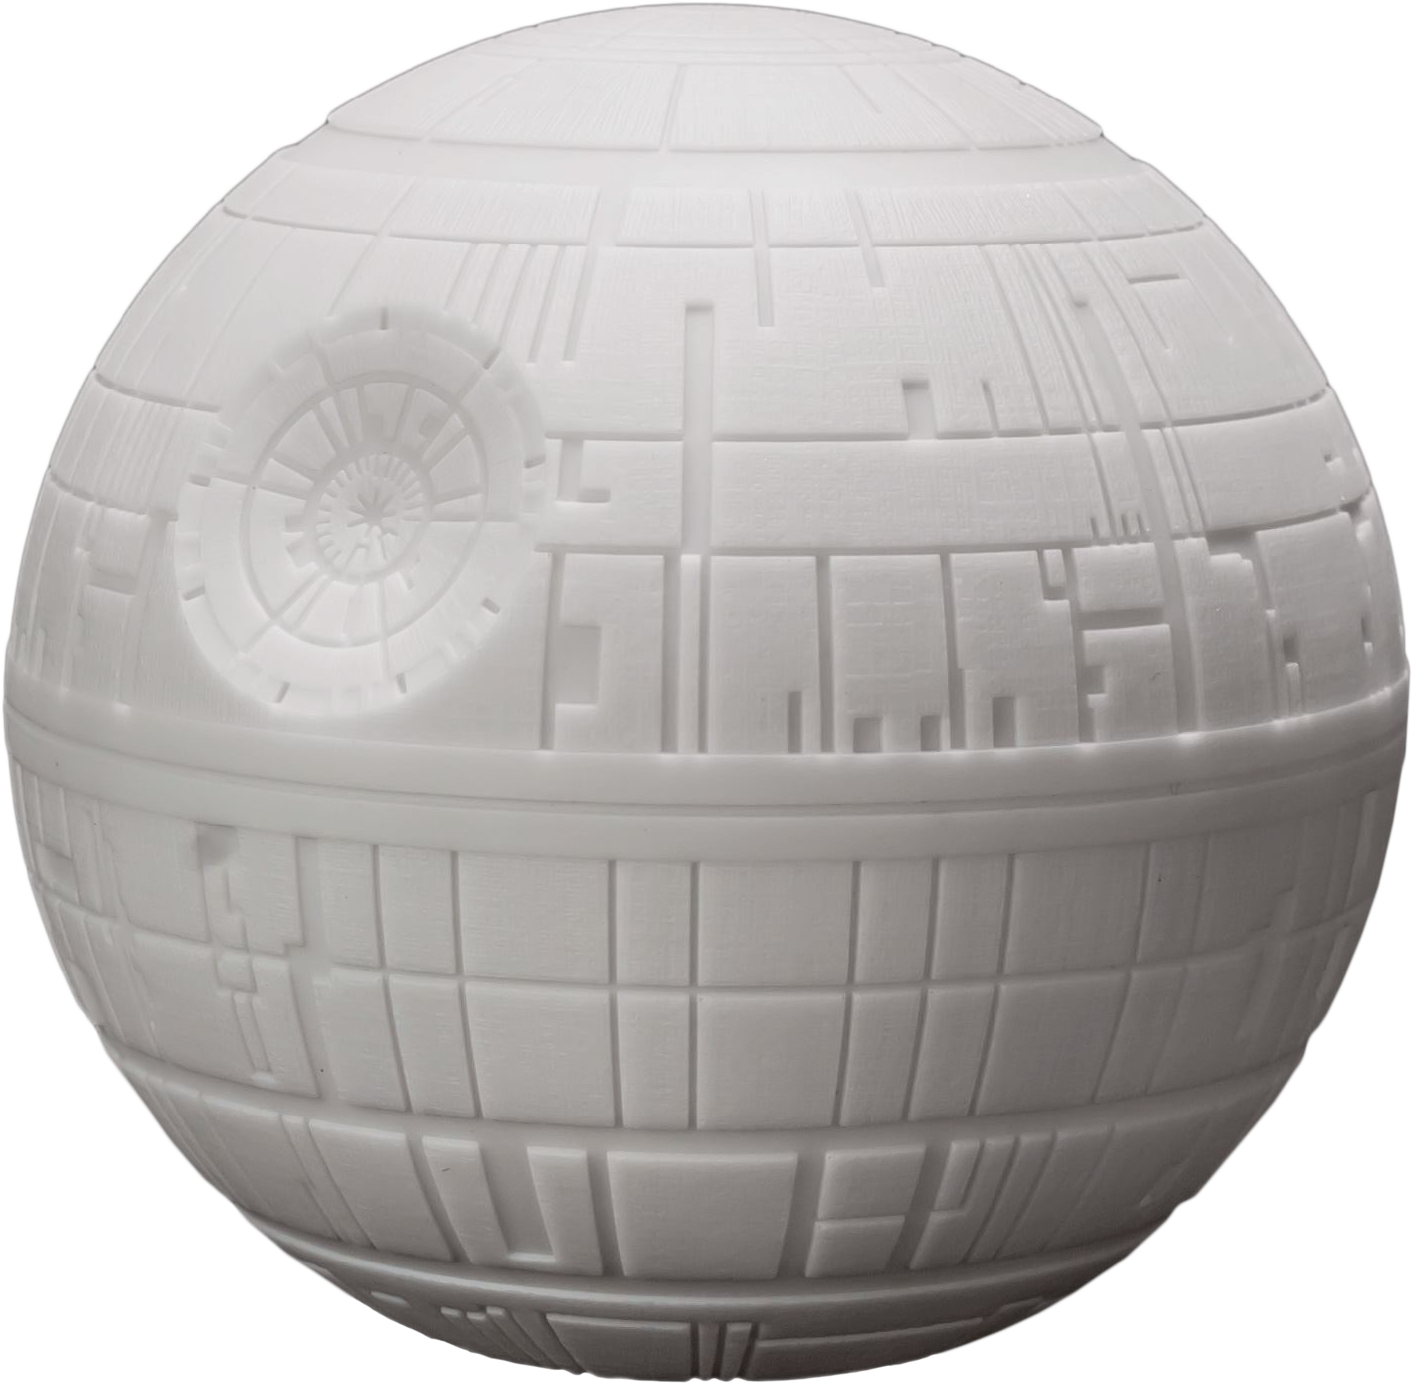 Star wars death star png. Colour changing led light